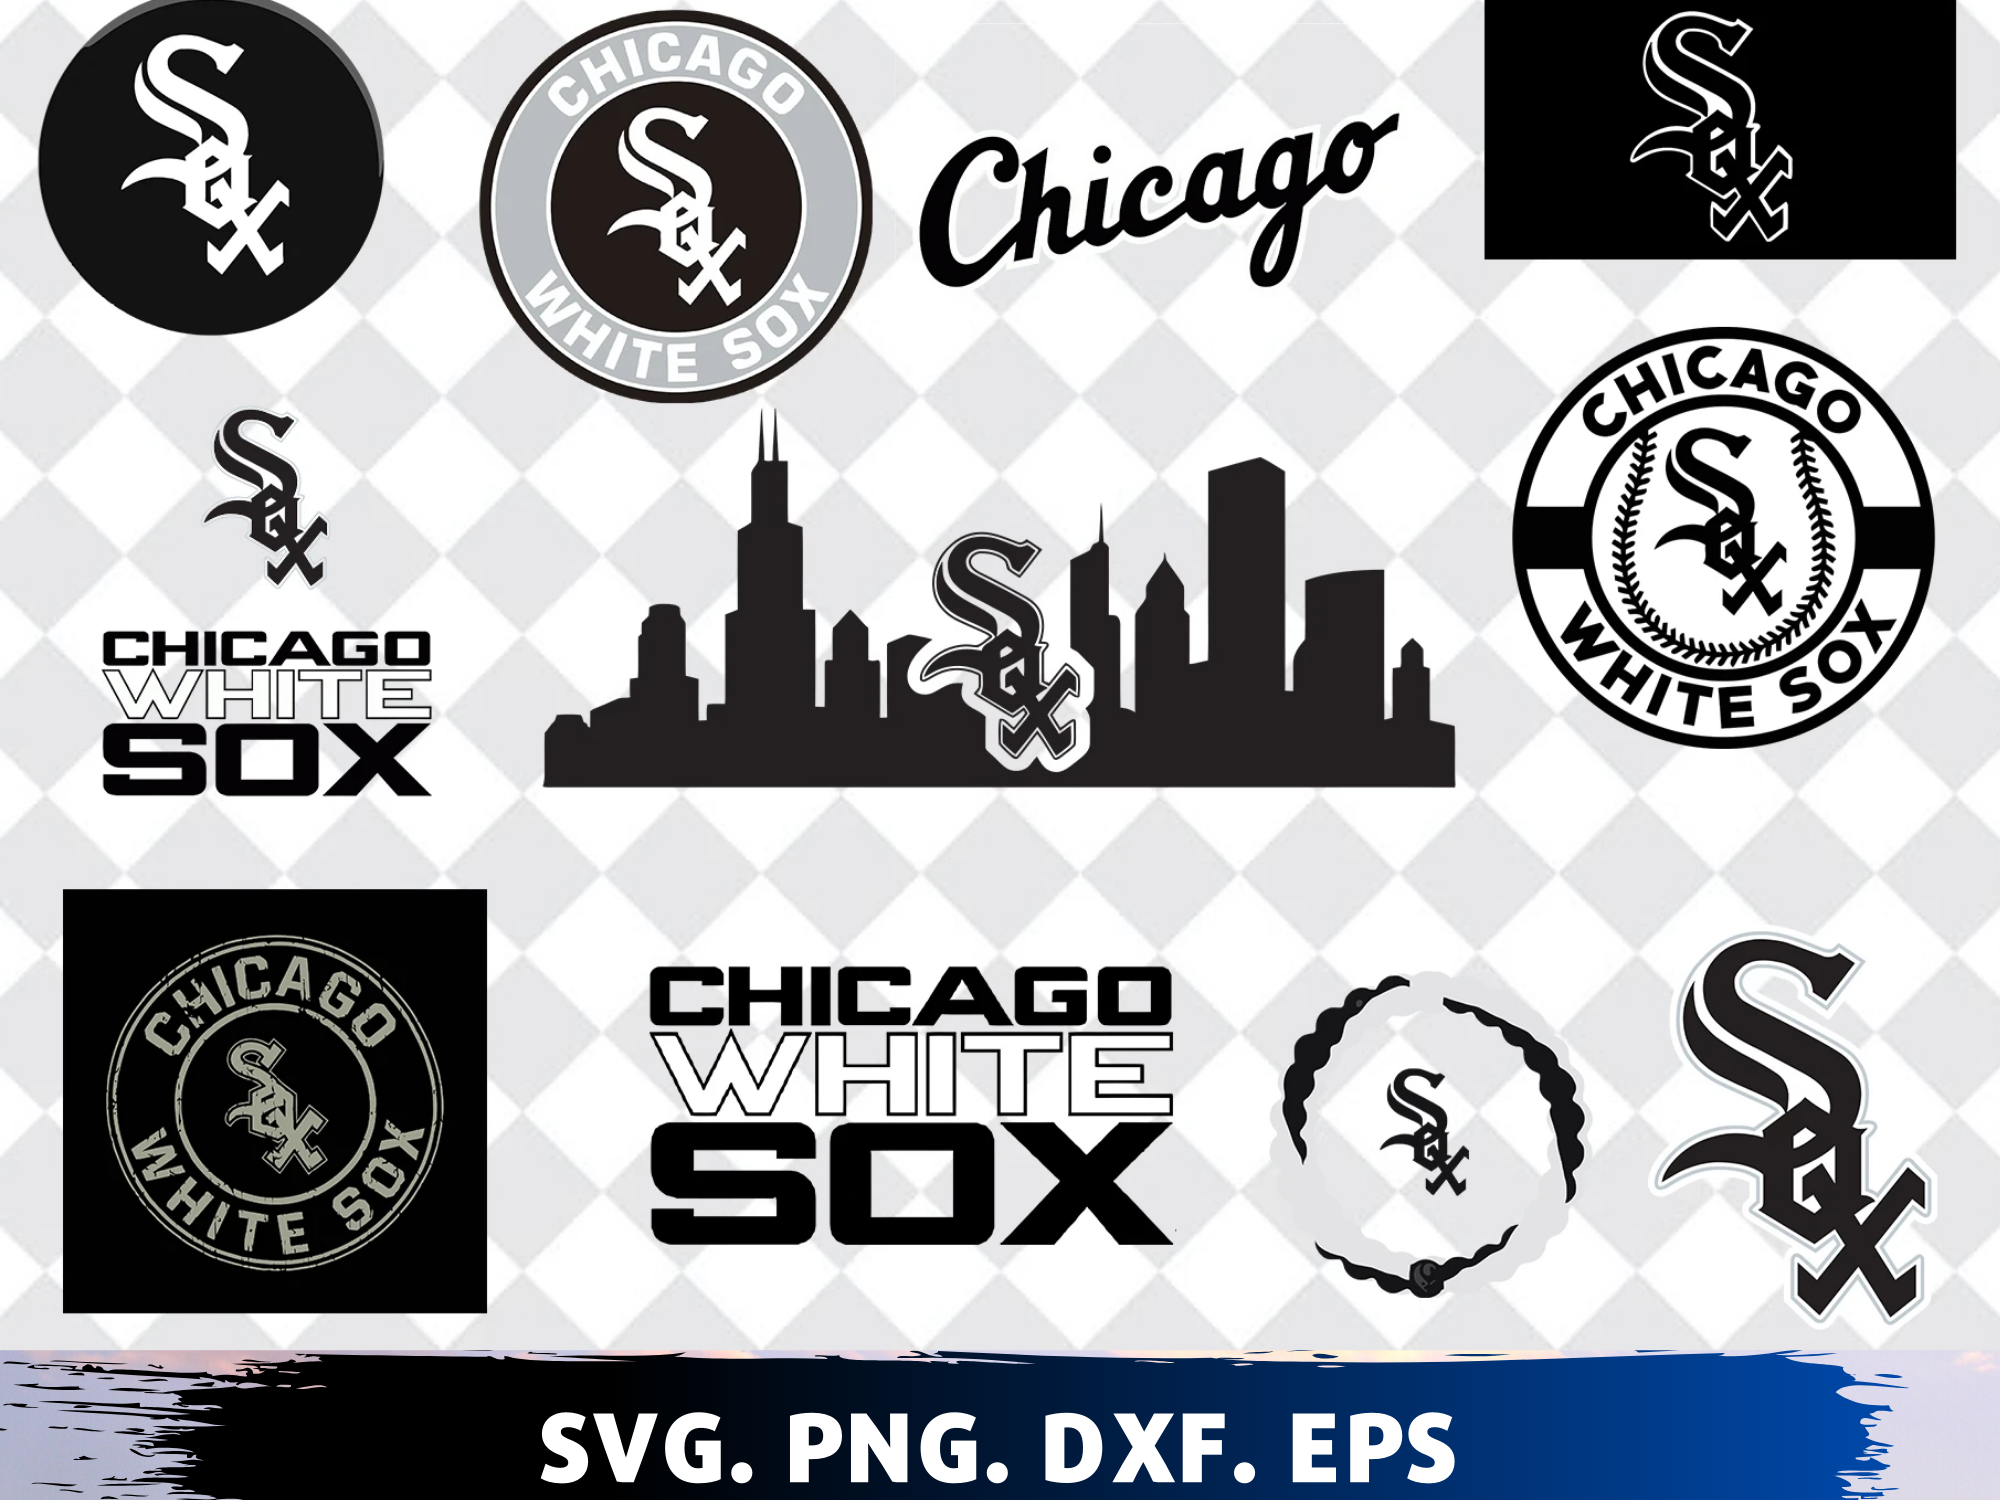 Clipartshop Chicago White Sox Chicago White Sox Svg Chicago White Sox Logo Chicago White Sox Clipart Chicago White Sox Cricut In 2020 Chicago White Sox Chicago White Sox Baseball White Sox Logo